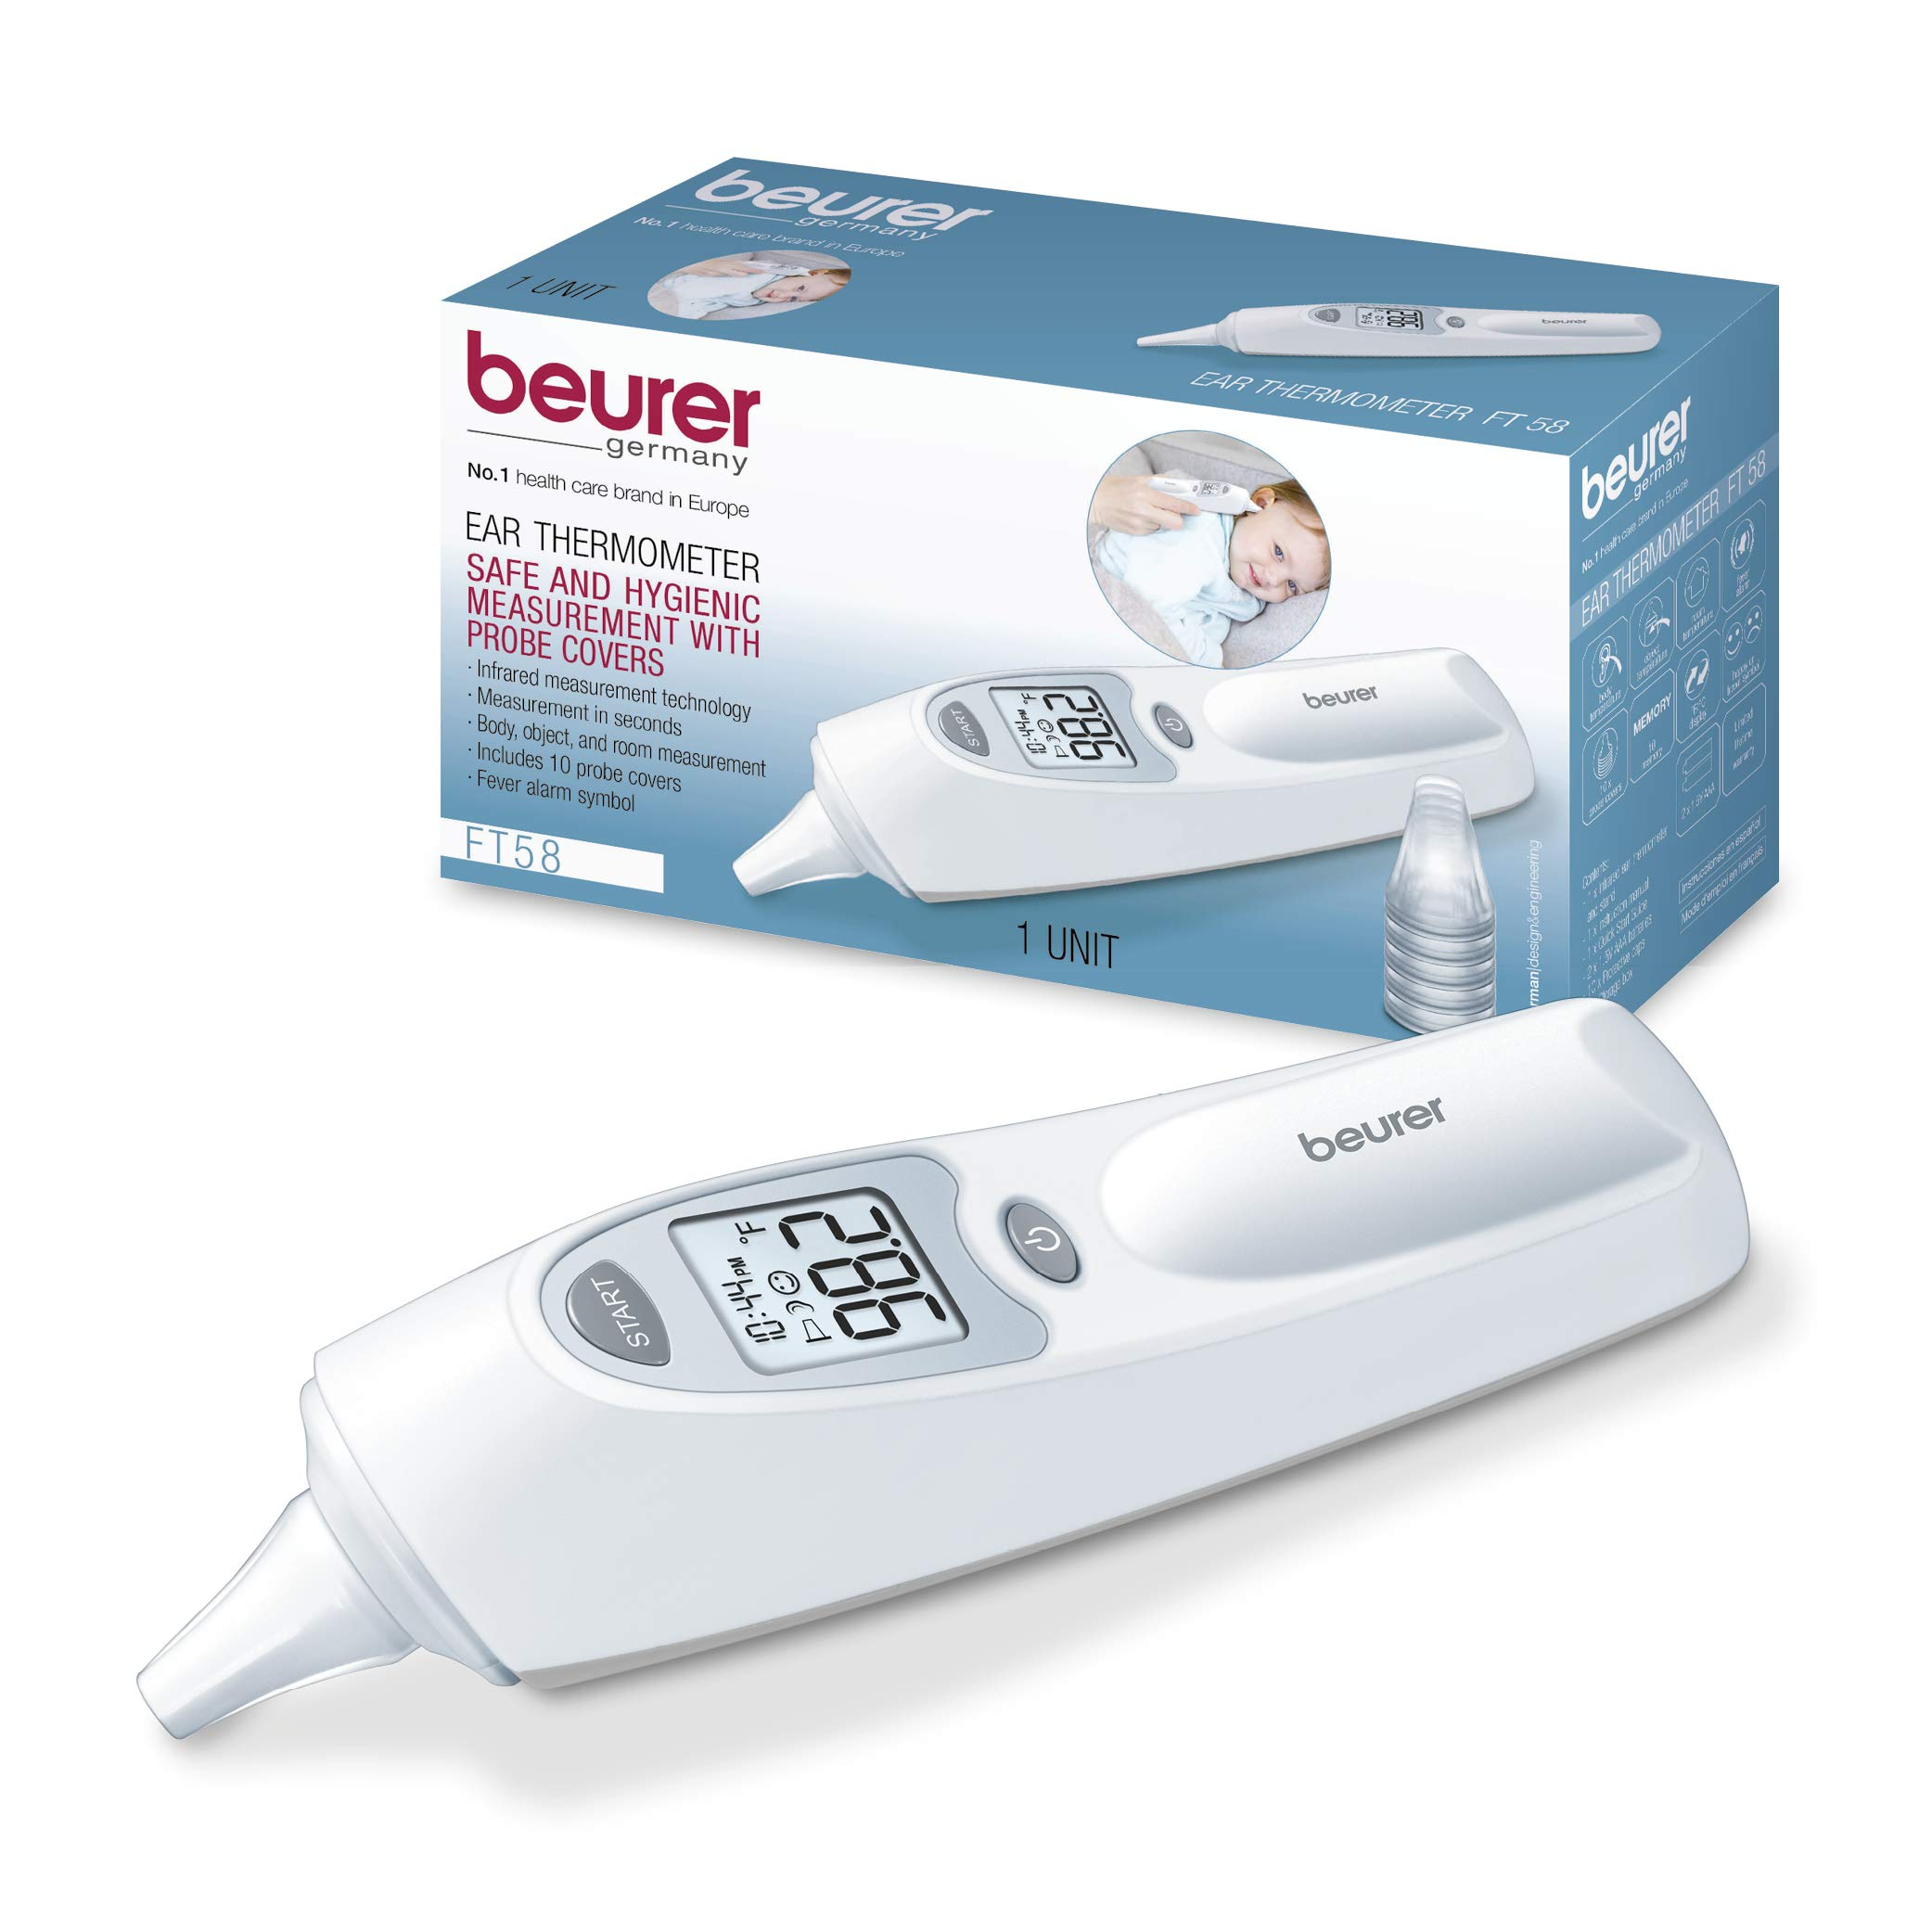 Beurer Digital Ear Thermometer - Measures Body, Room and Object Thermometer for Babies, Toddlers and Adults, FT58